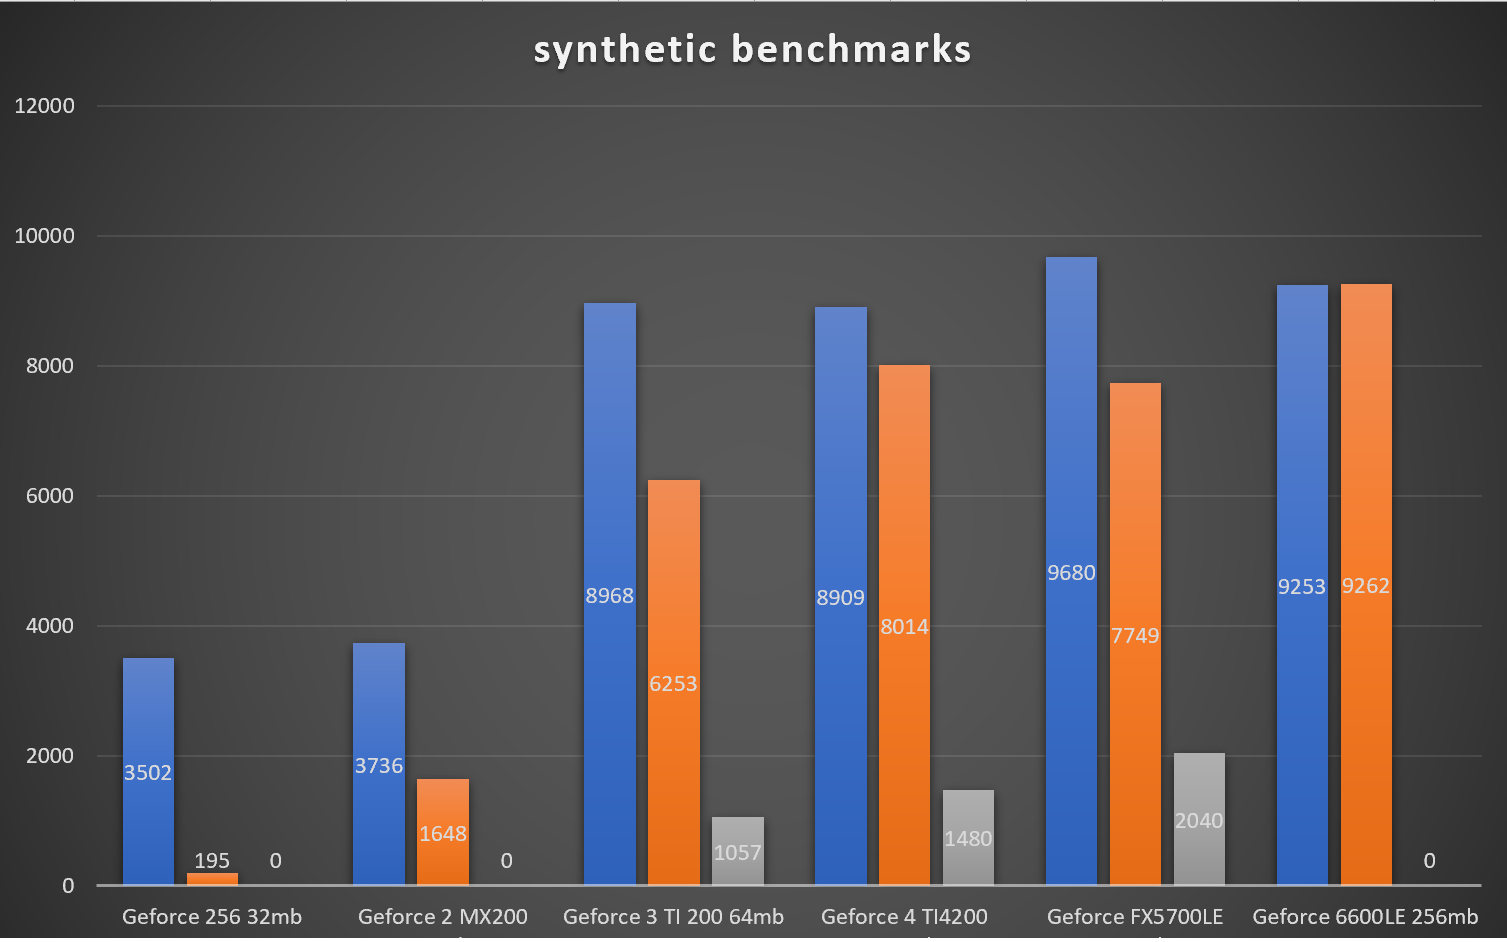 Synthetic benchmarks